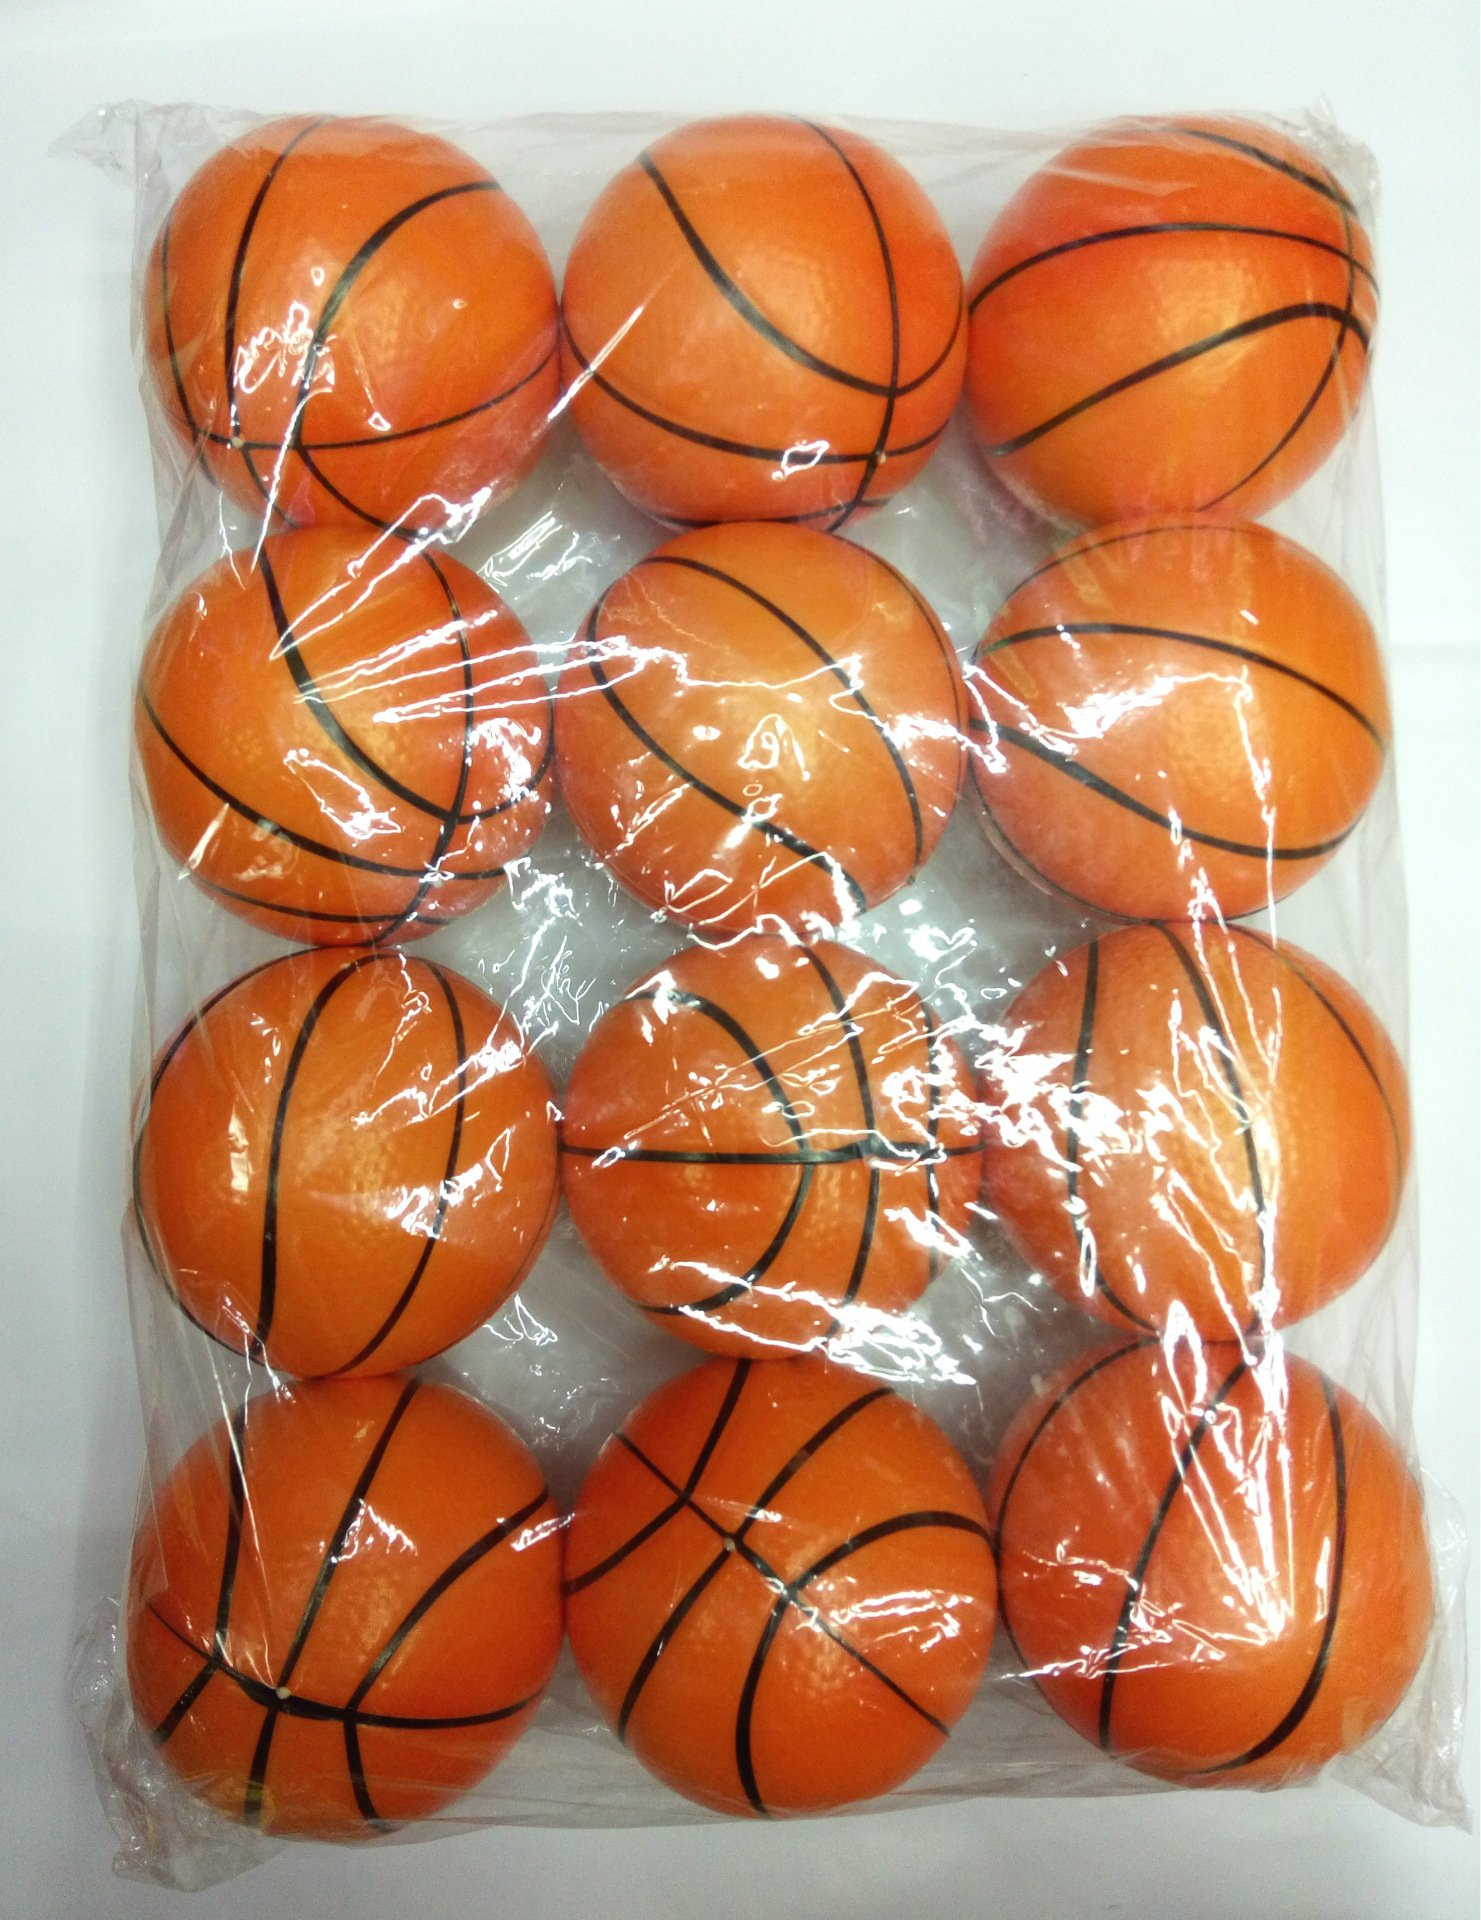 12pcs/pack Basketball Stress Balls Toy for Toddlers and Kids,Sports Squeeze Balls Bulk Pack of 12 Relaxable Stress Relief Basketball Squeeze Balls Toys for Children Boys Girls Christmas Gift